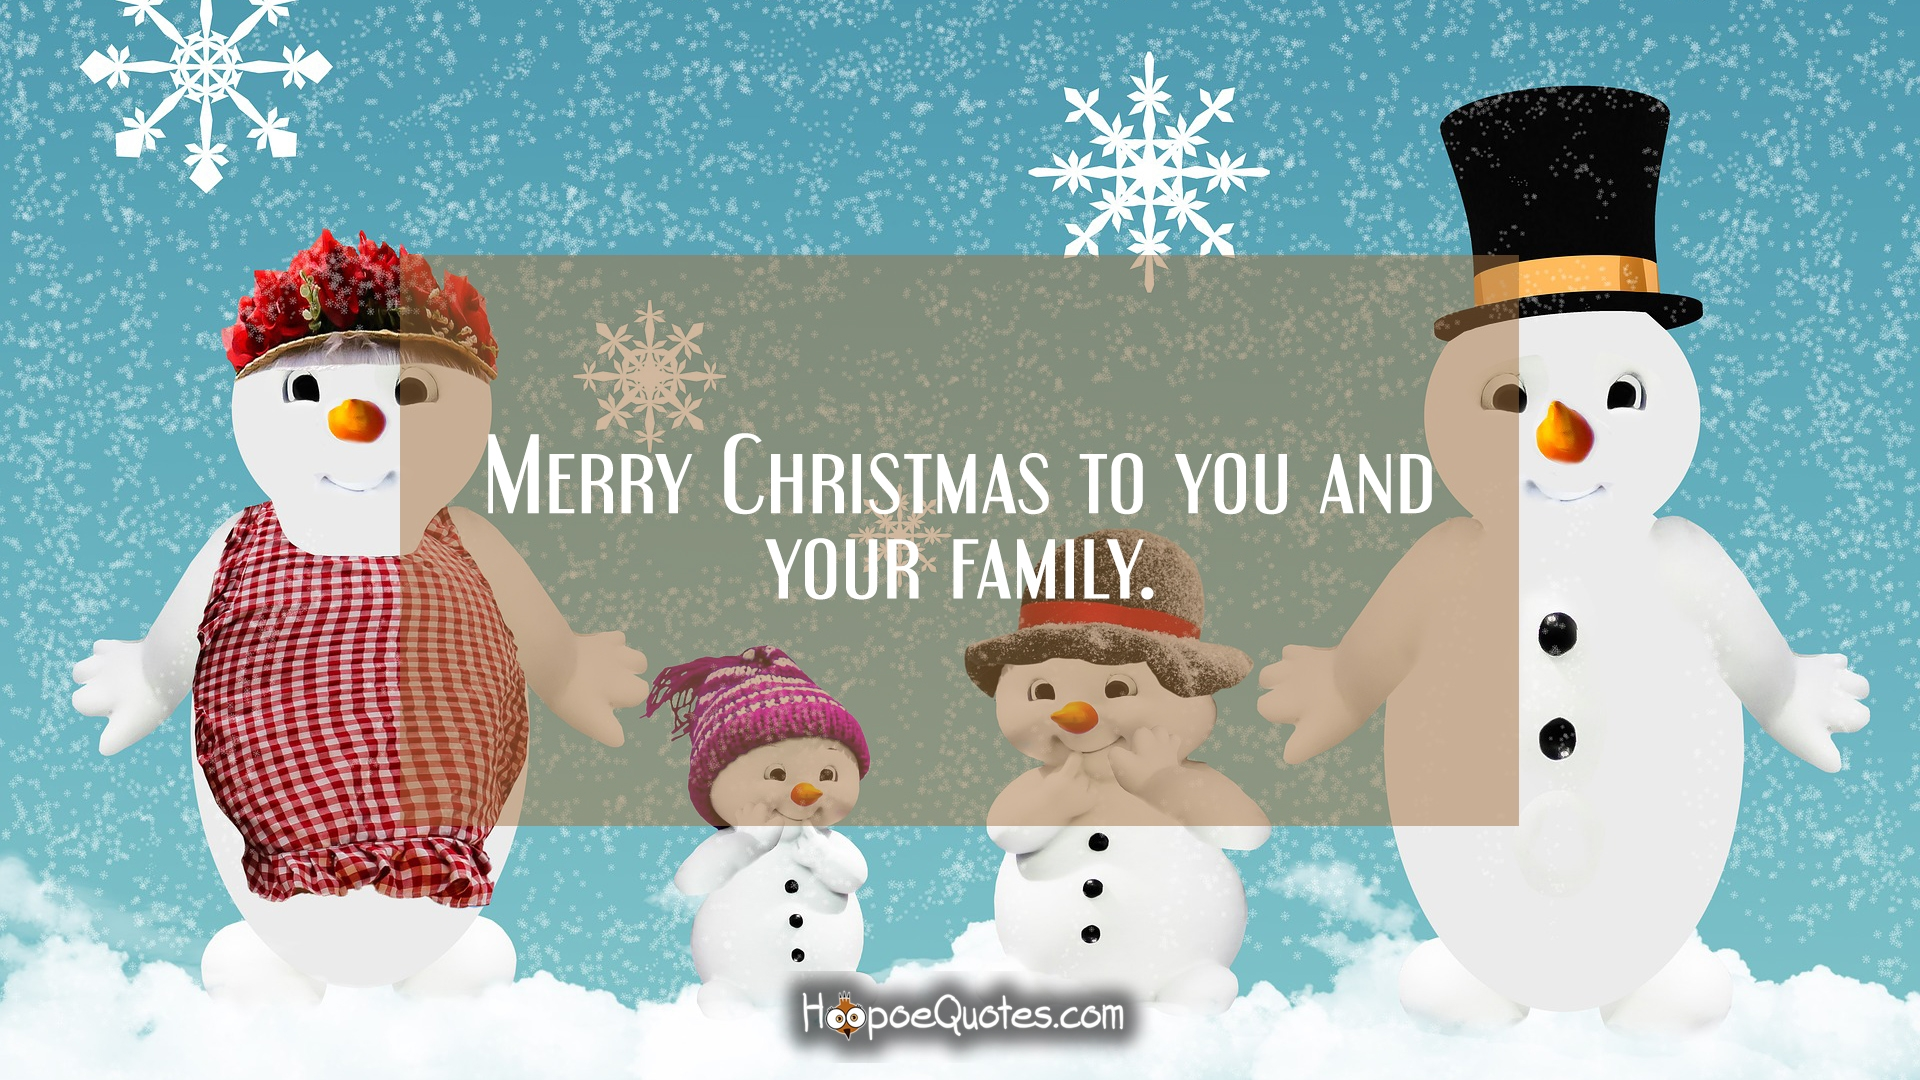 Merry Christmas Wishes - HoopoeQuotes